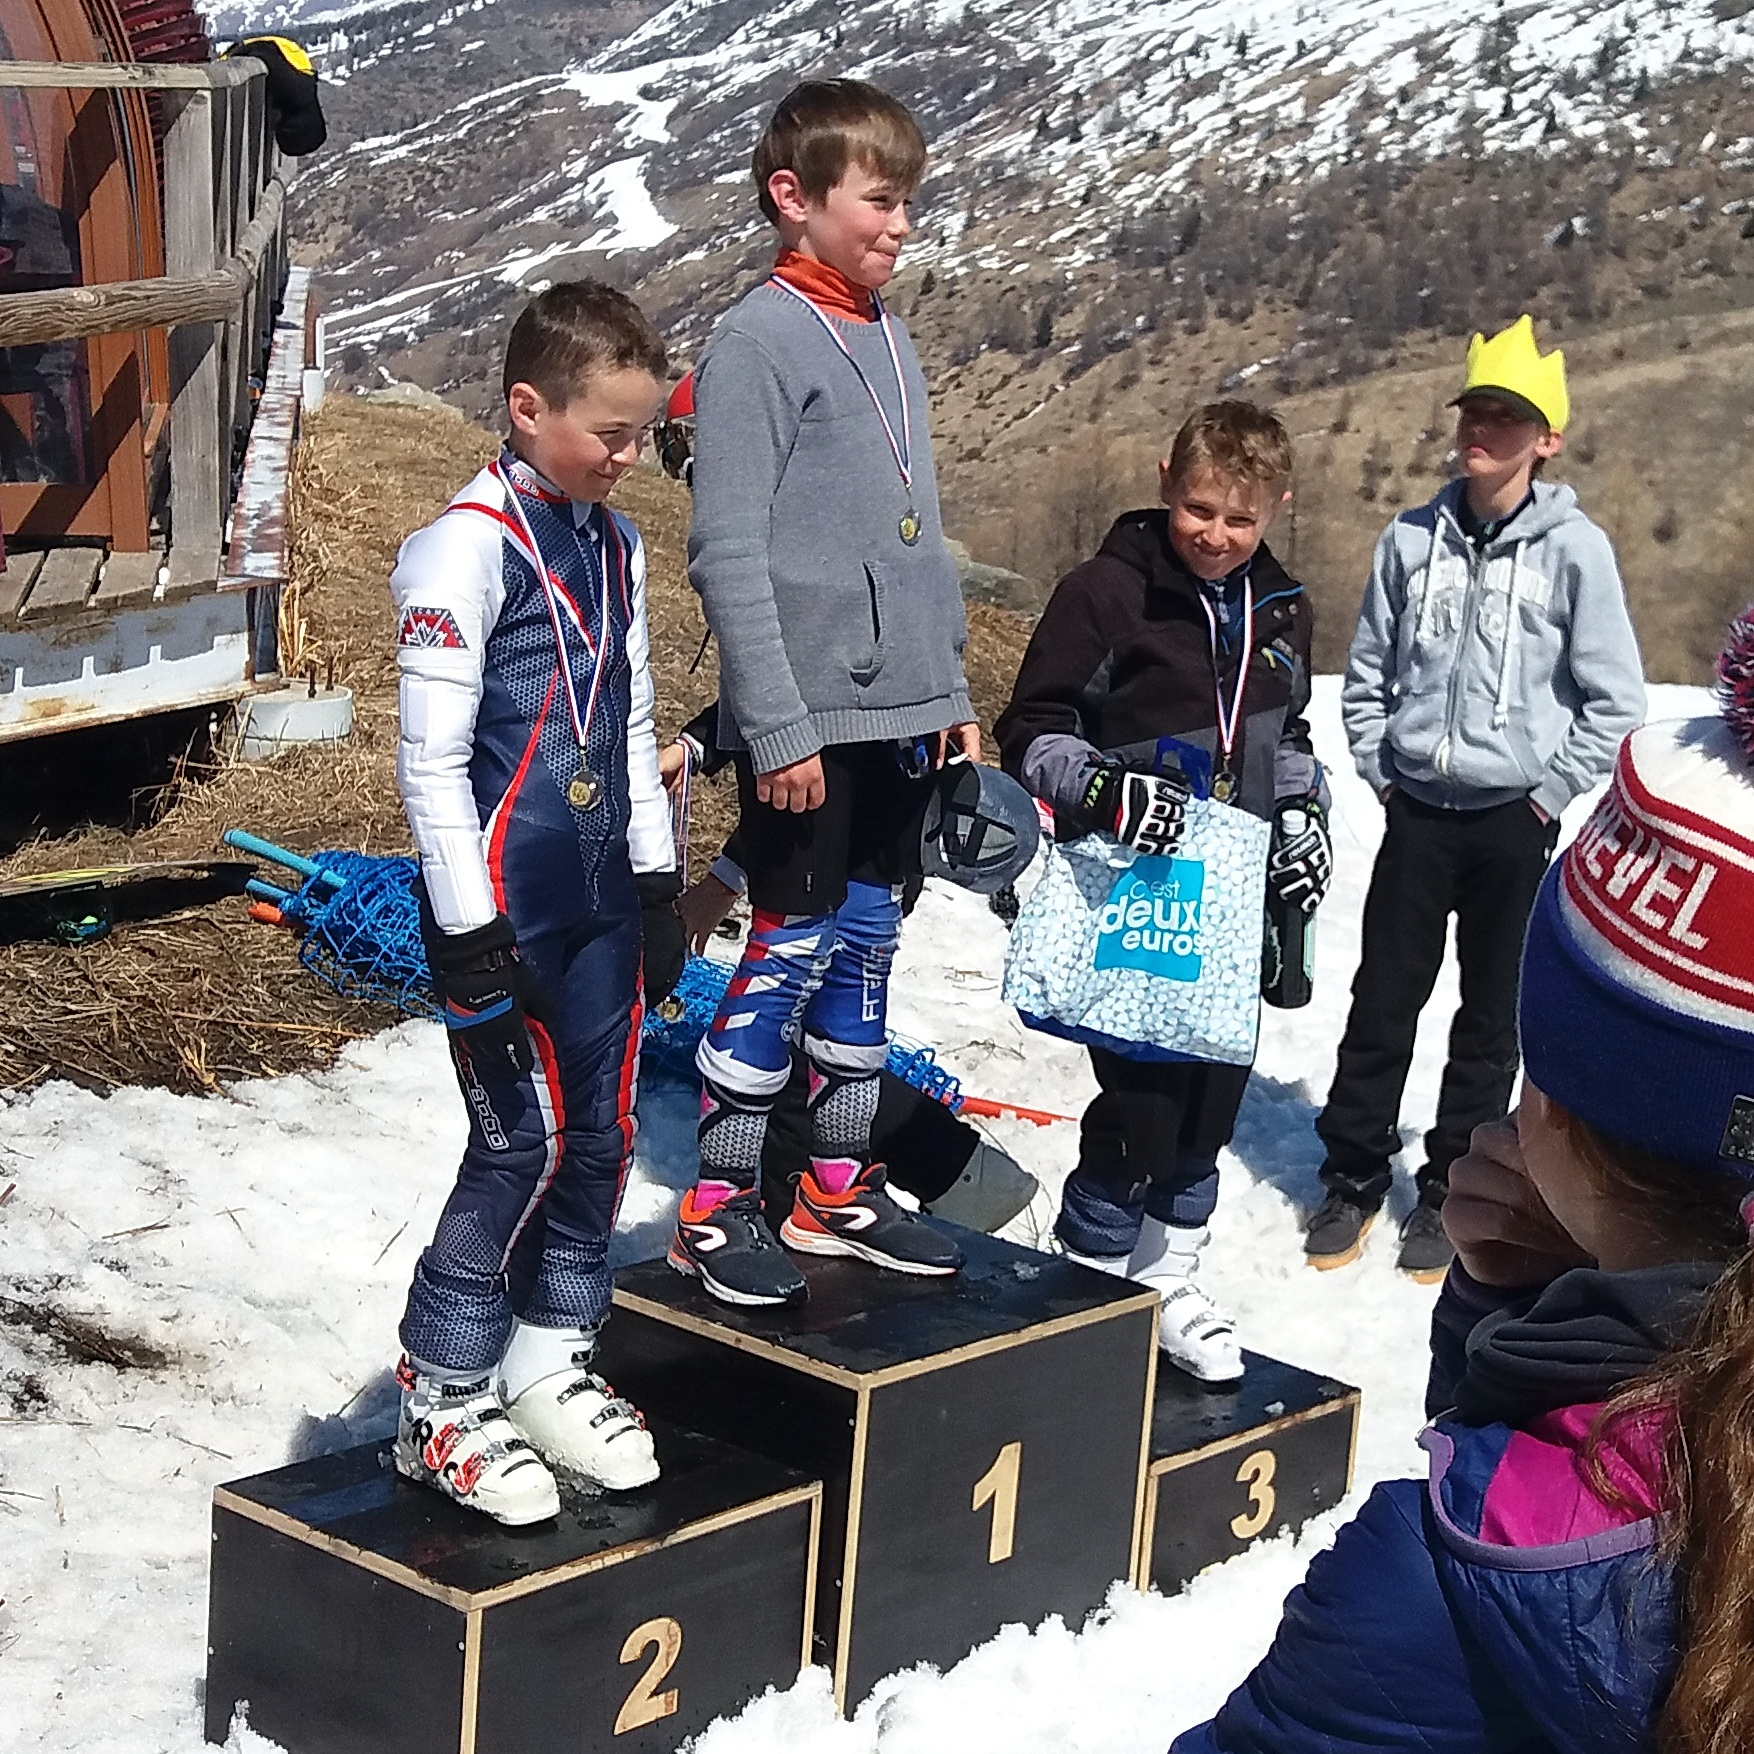 20190414Valloire-course du club (10)